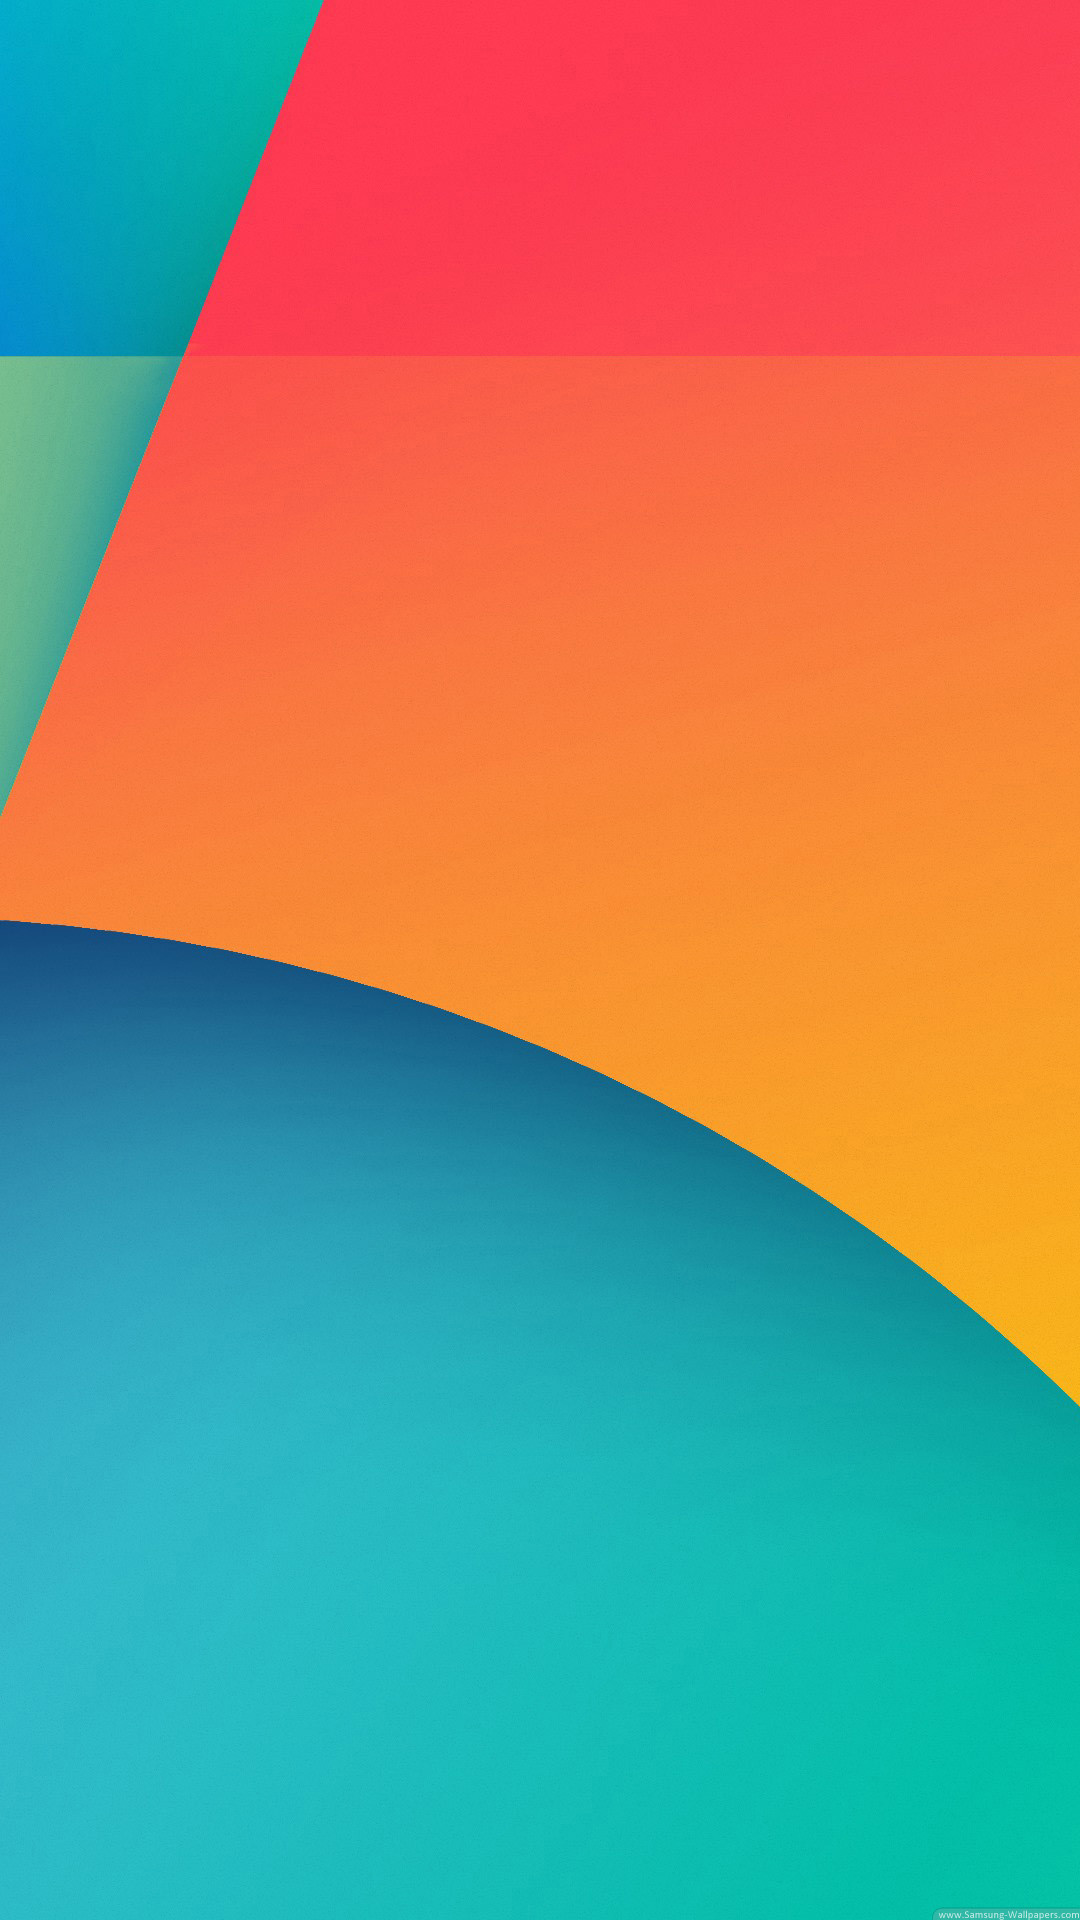 Best Nexus 5 Wallpaper 68 images